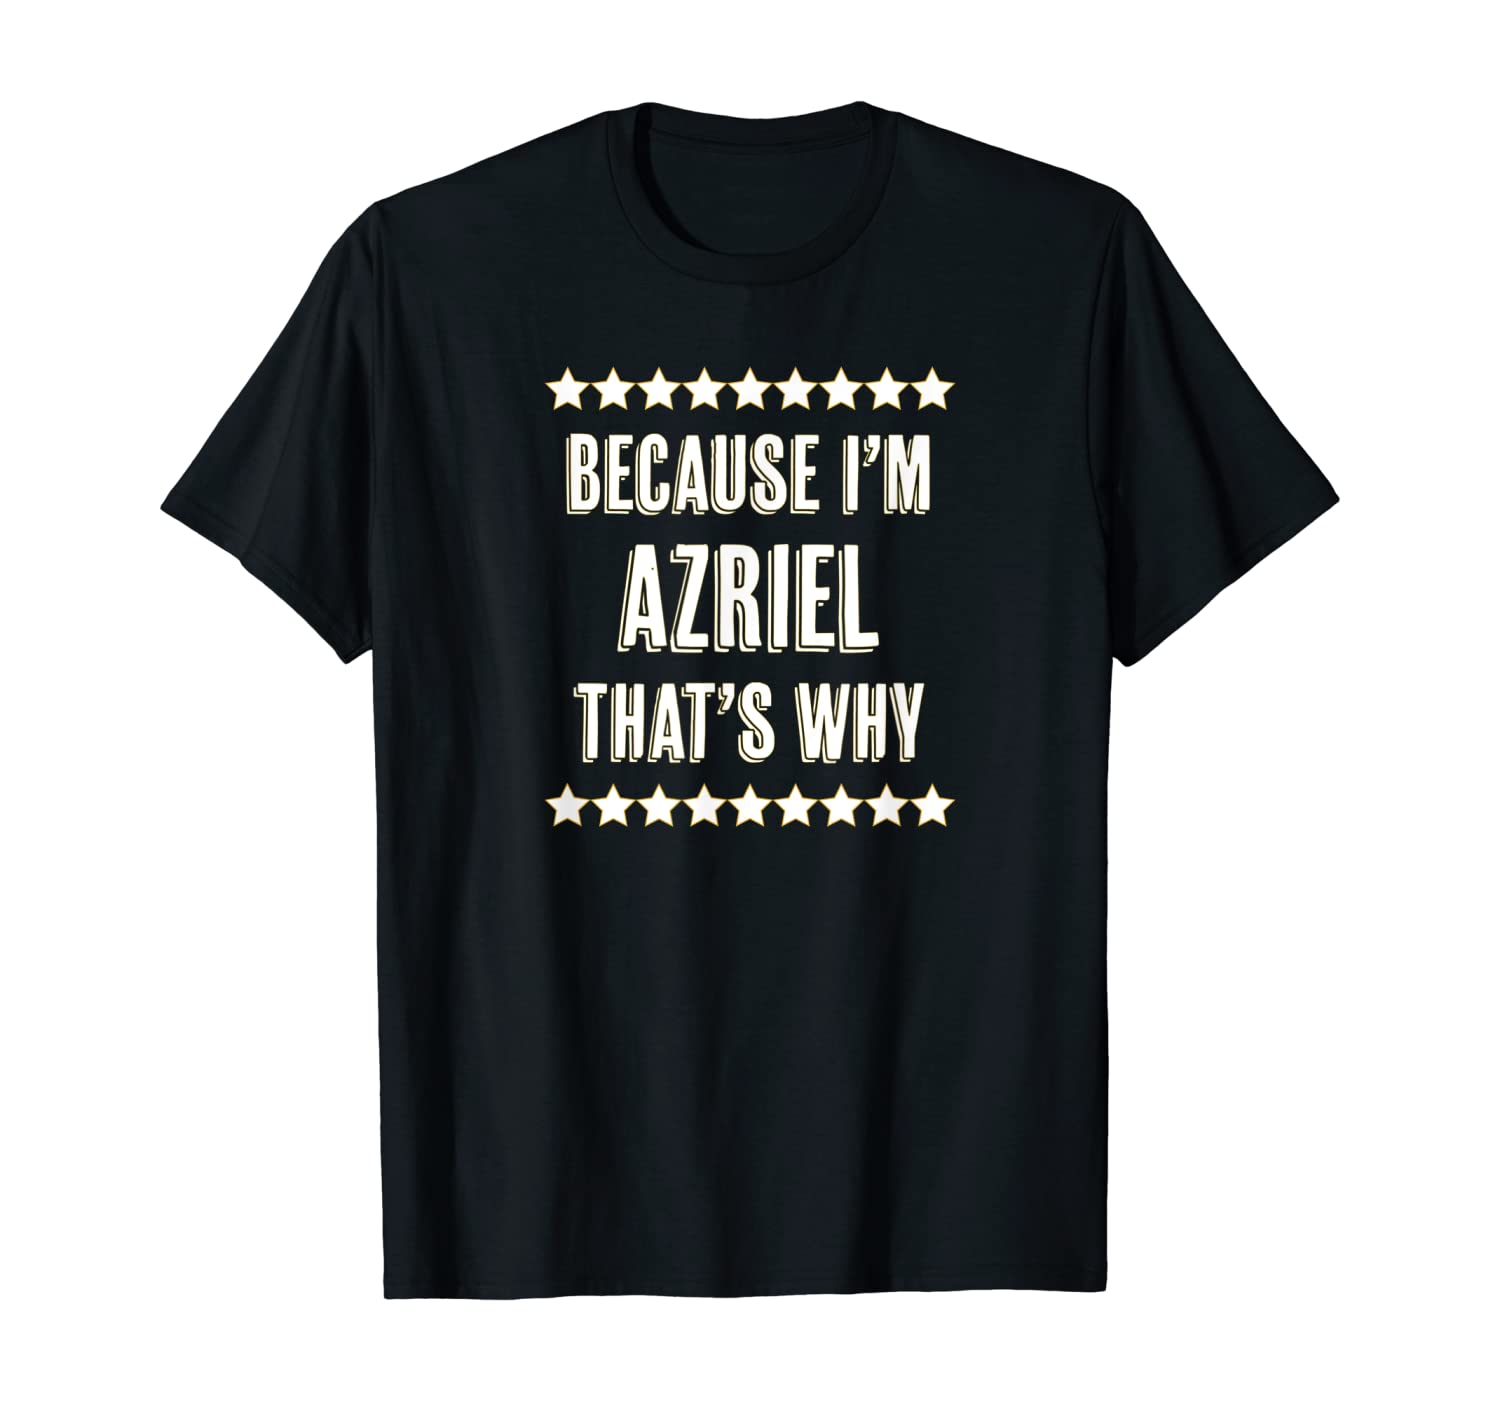 Because I'm - AZRIEL - That's Why | Funny Name Gift - T-Shirt